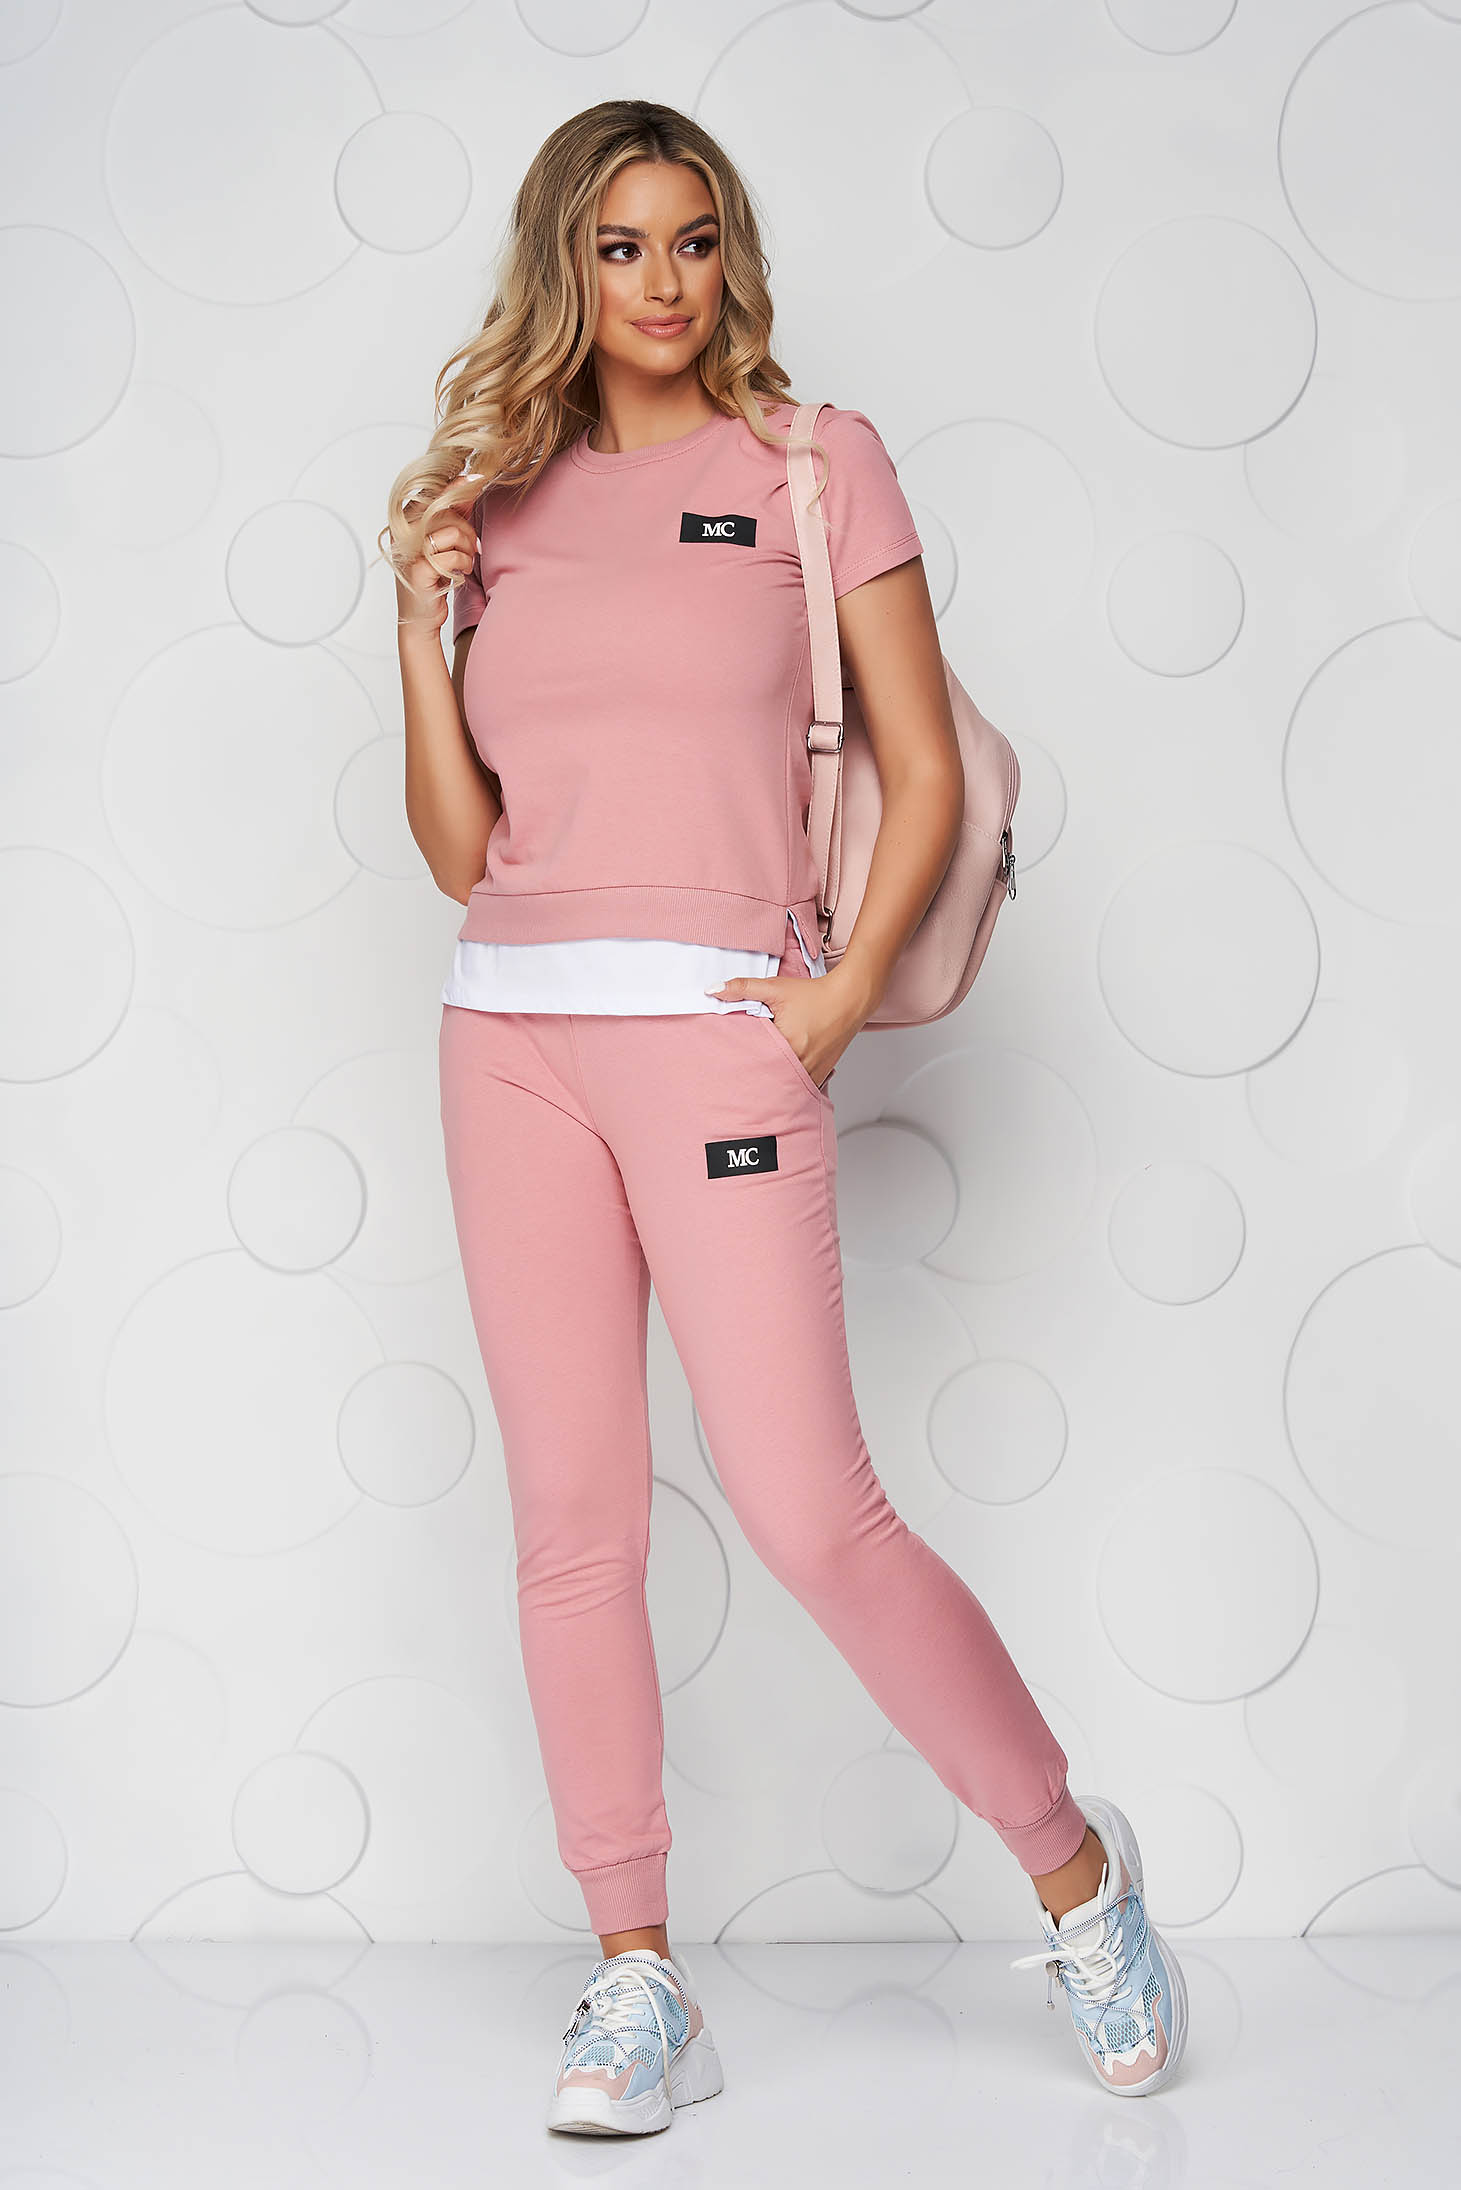 Lightpink sport 2 pieces casual cotton from two pieces with trousers